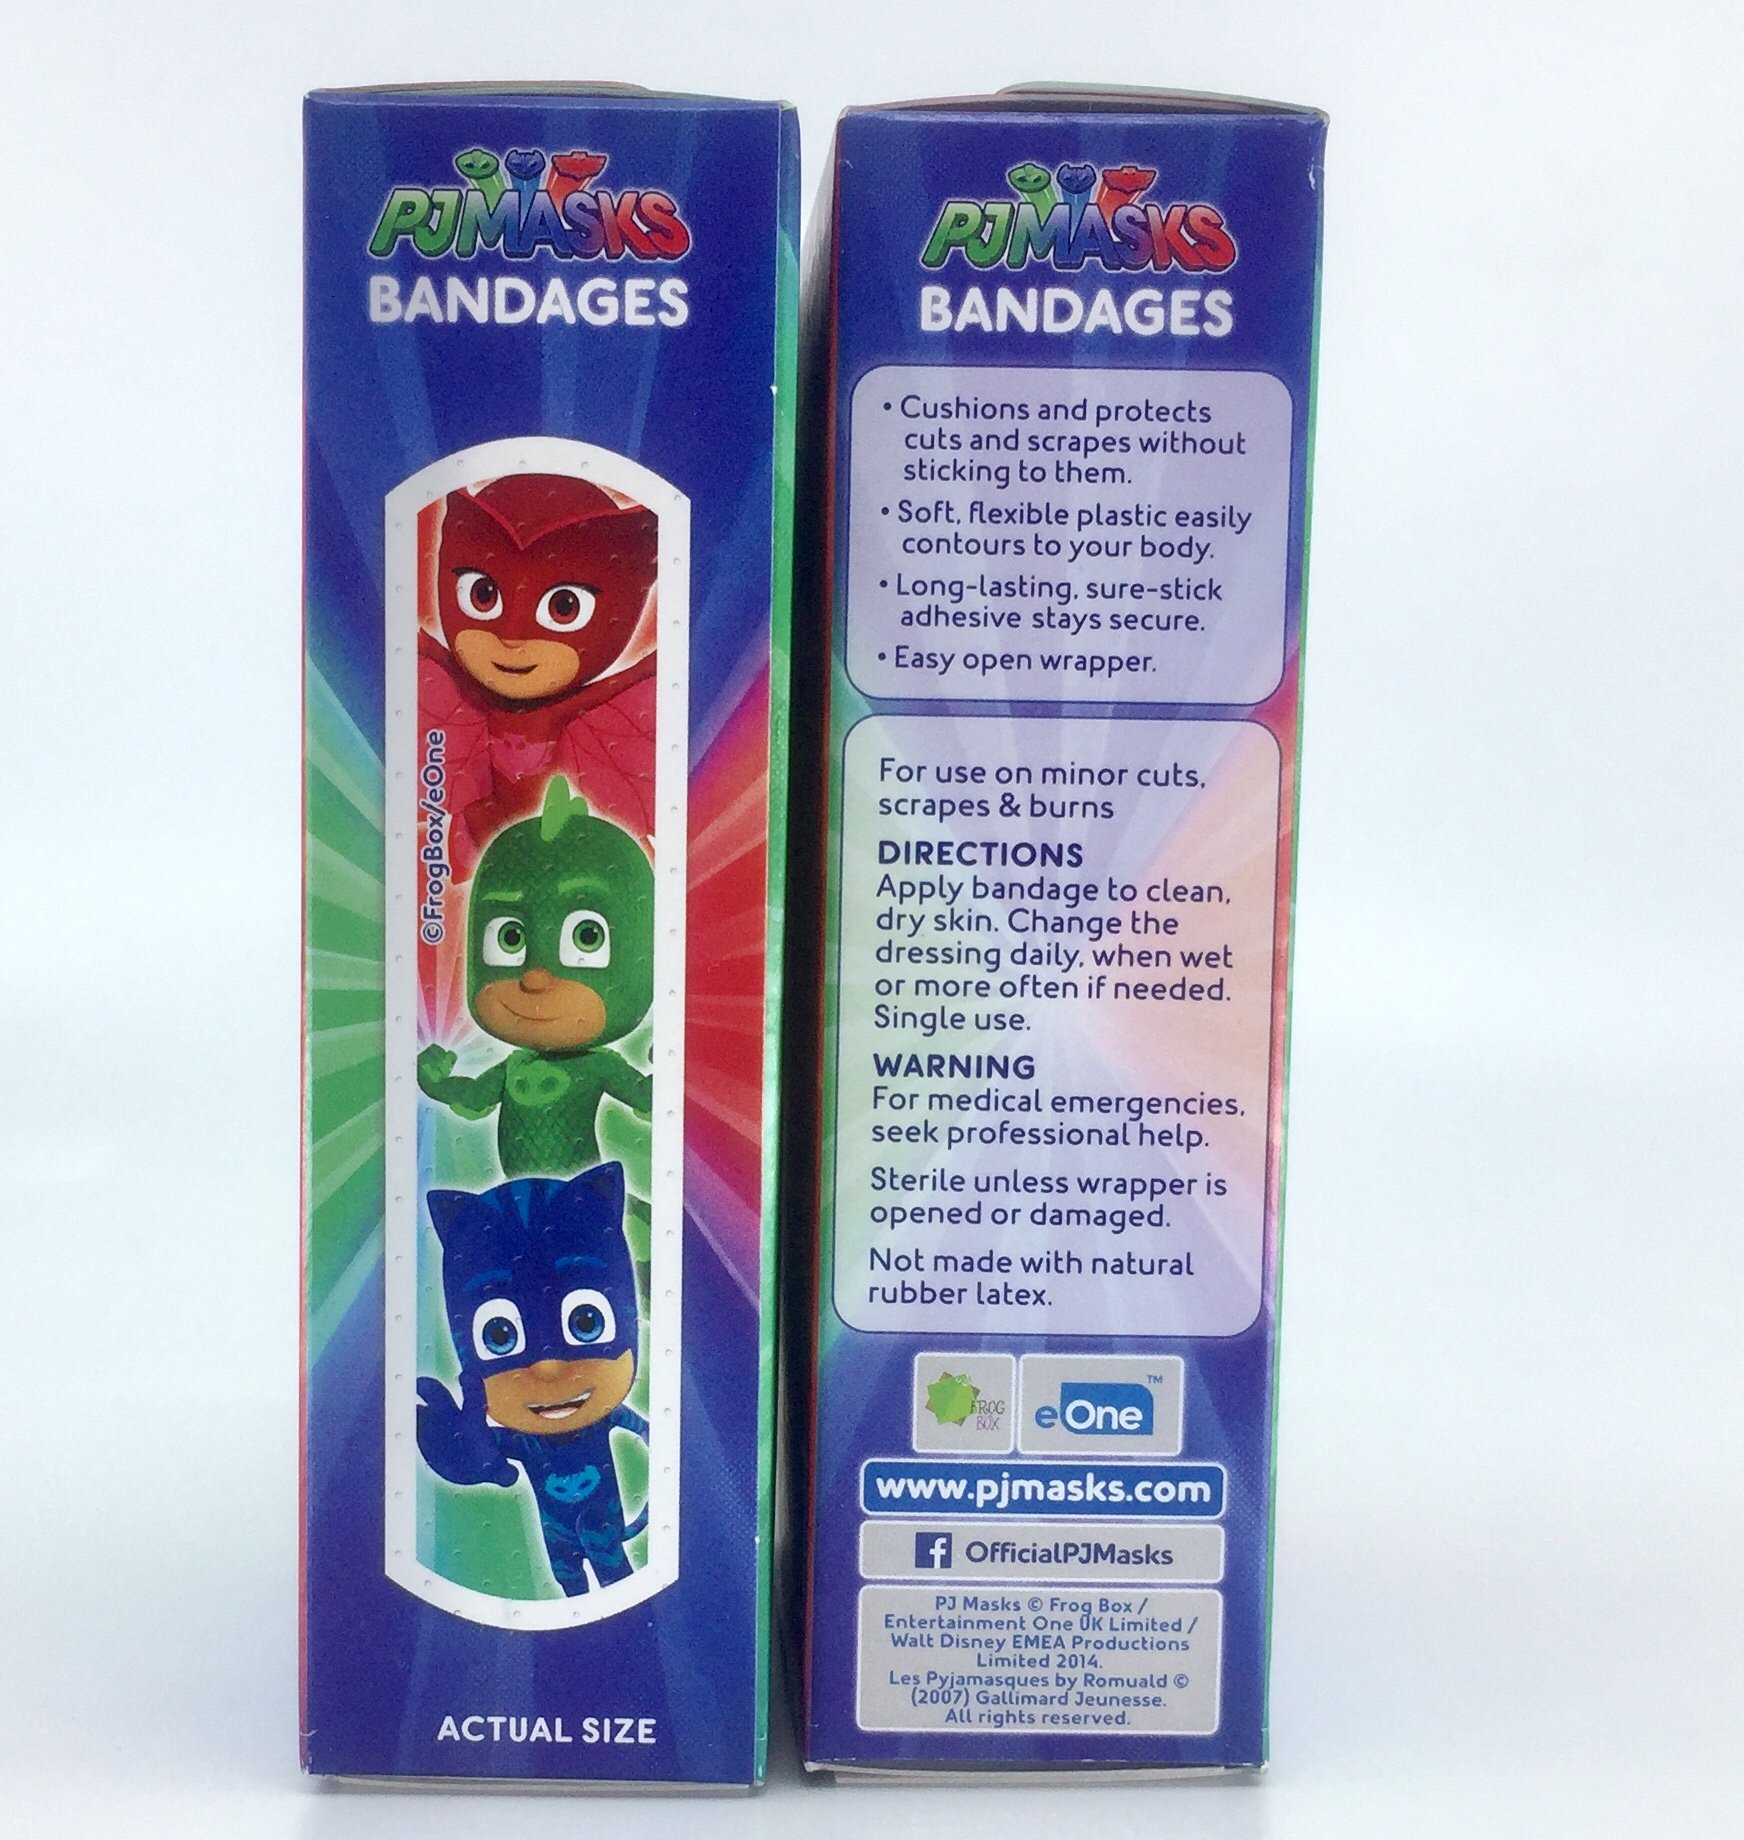 PJMASKS Latex Free Adhesive Bandages 3 Pk of Variety Designs 20 per Box -60 Total, PJ Masks Tin Bandaid Holder/Case with Bonus Free Mini Puzzle and Free Collection of Fun Kids Jokes by Zee(4+ Items)